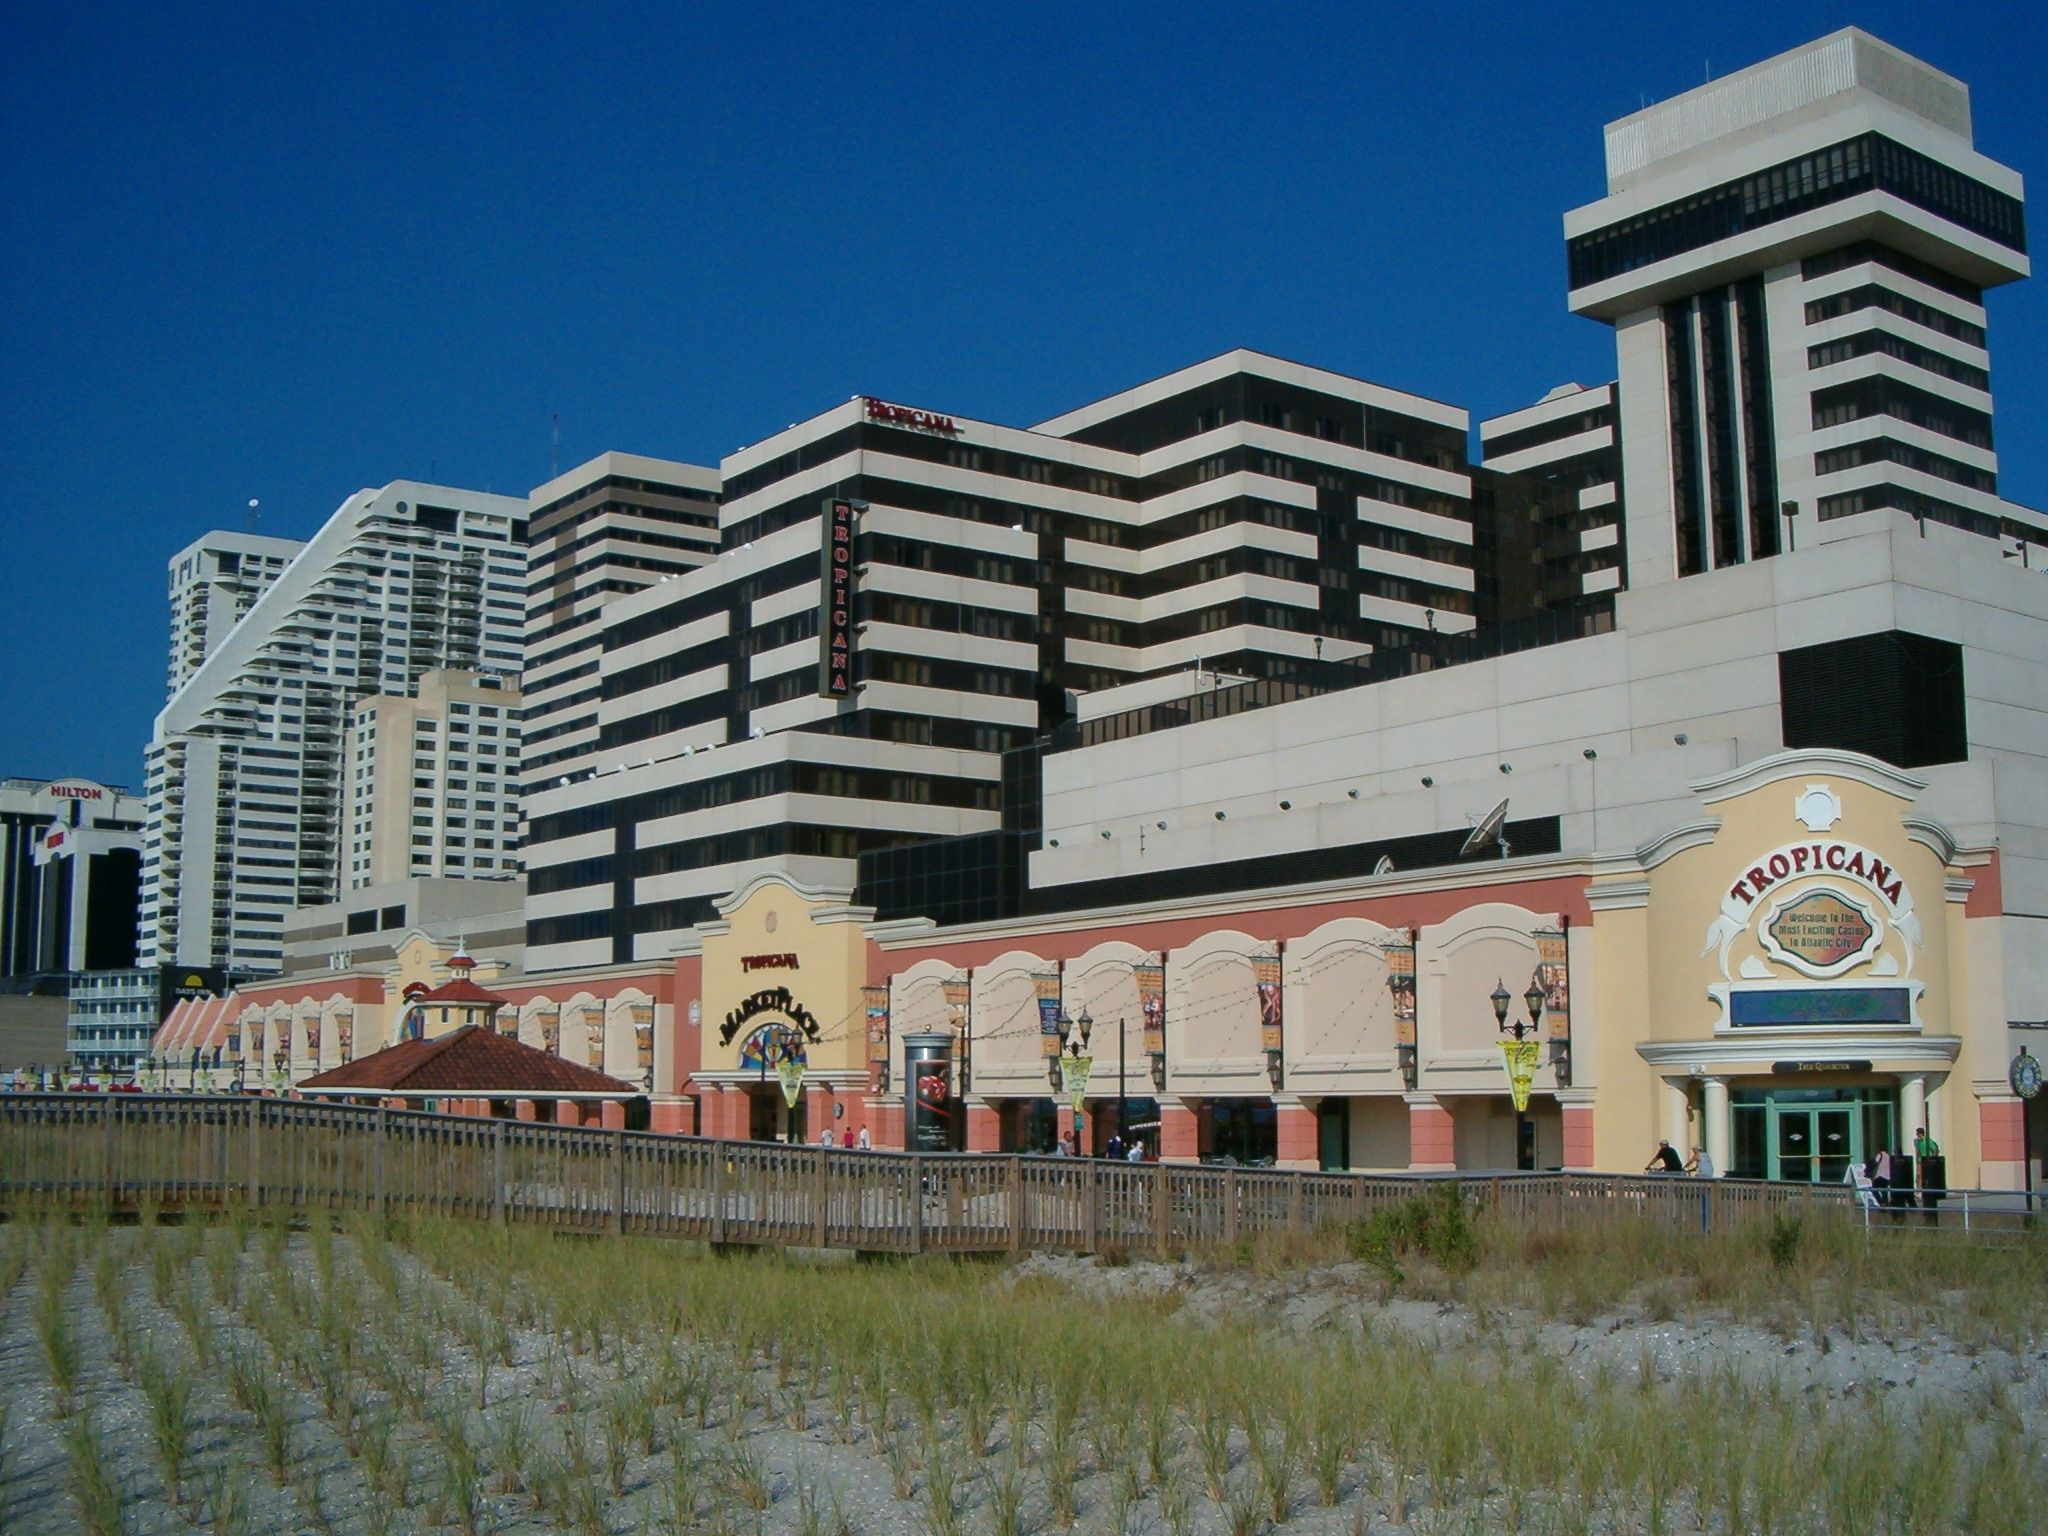 Tropicana Casino On The Boardwalk In Atlantic City Nj We Stayed Here Several Times House Styles Boardwalk Favorite Places